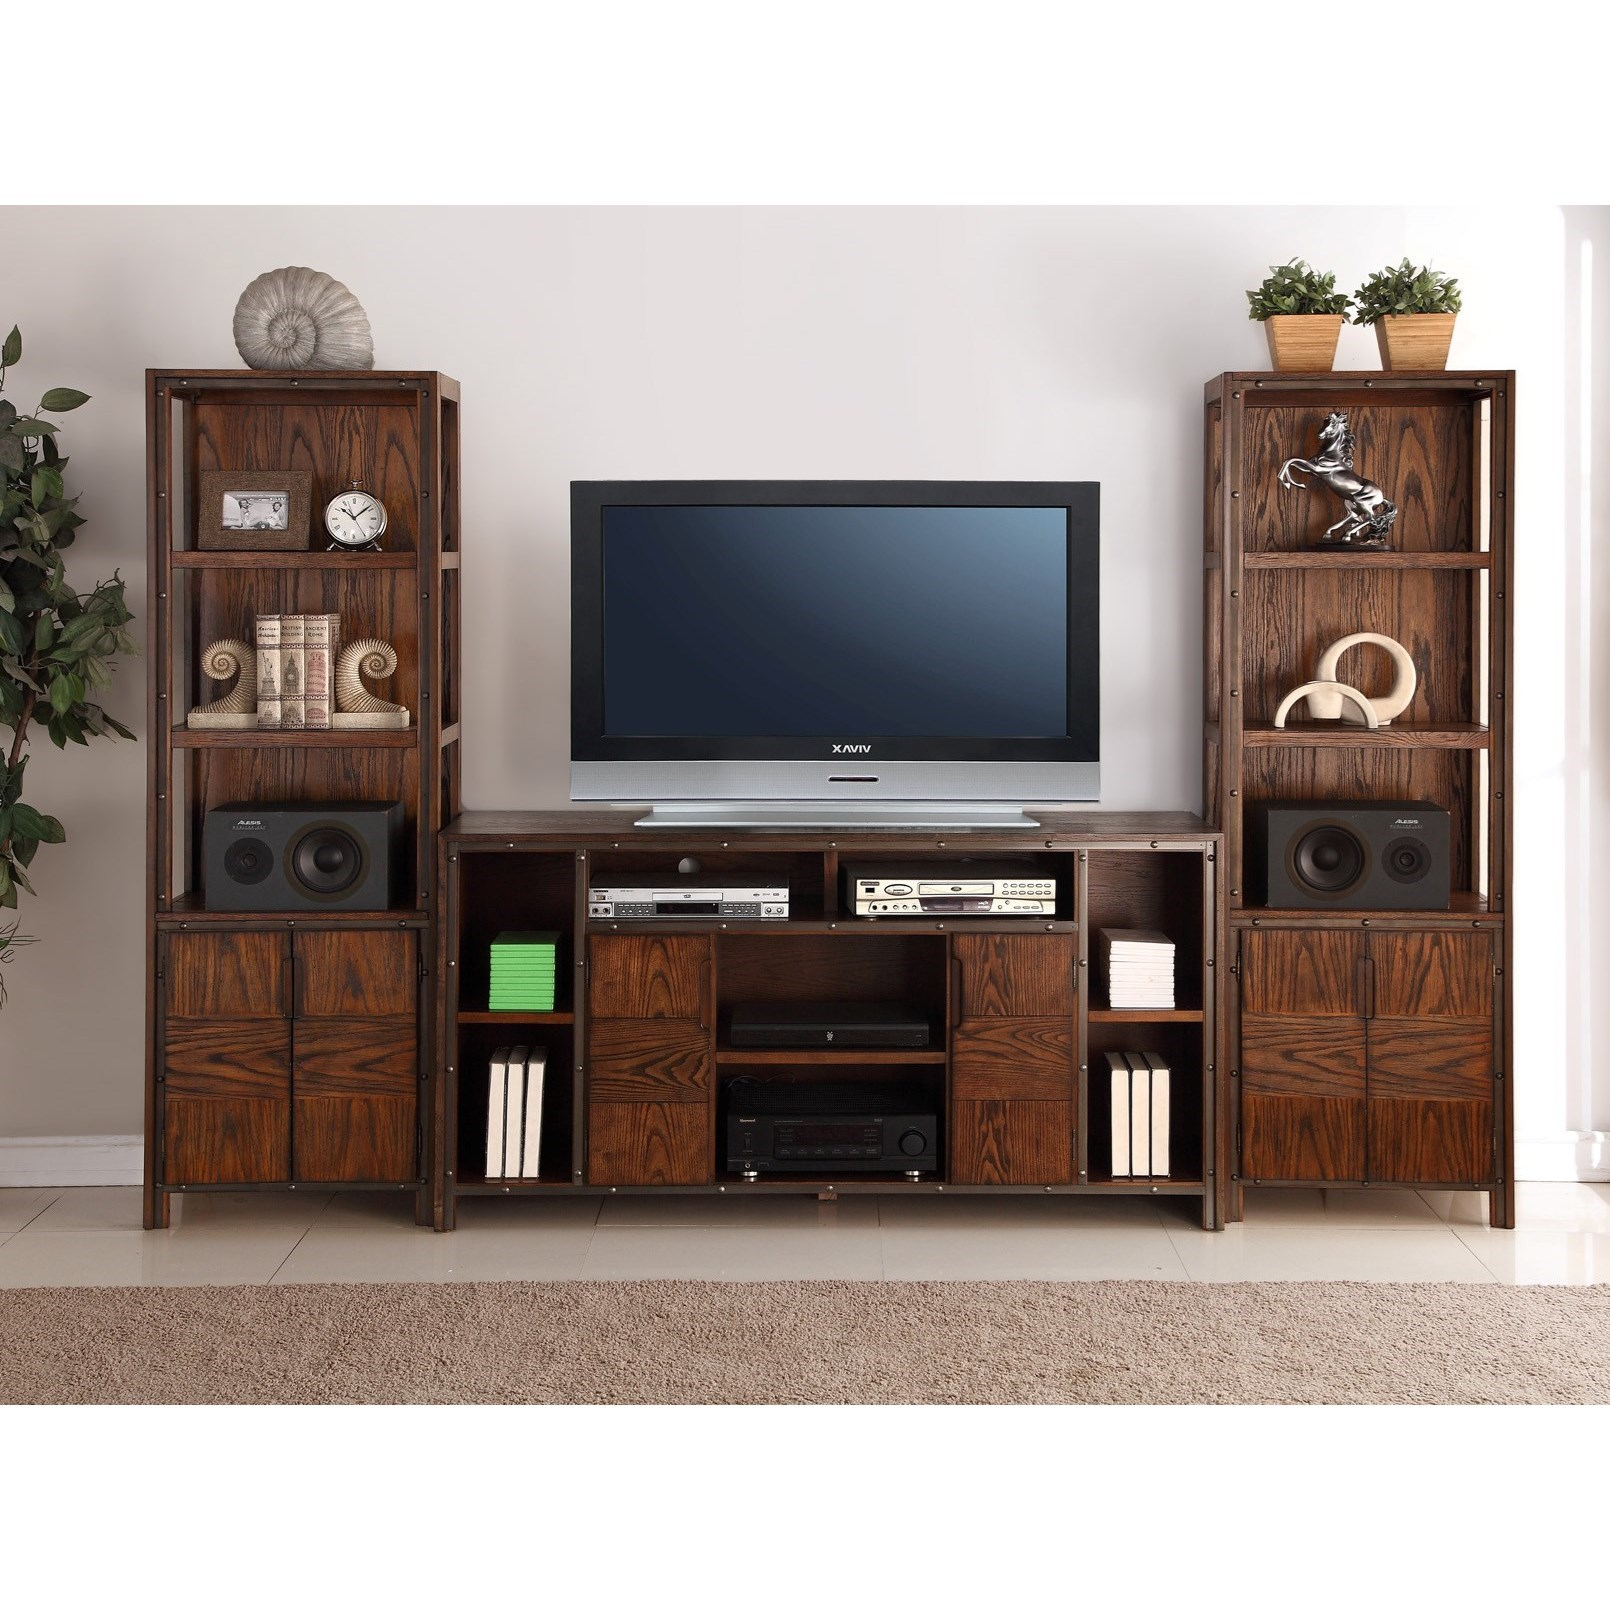 Legends Furniture Crossgrain Collection Entertainment Wall Console - Item Number: ZCGN-1464+2x3000